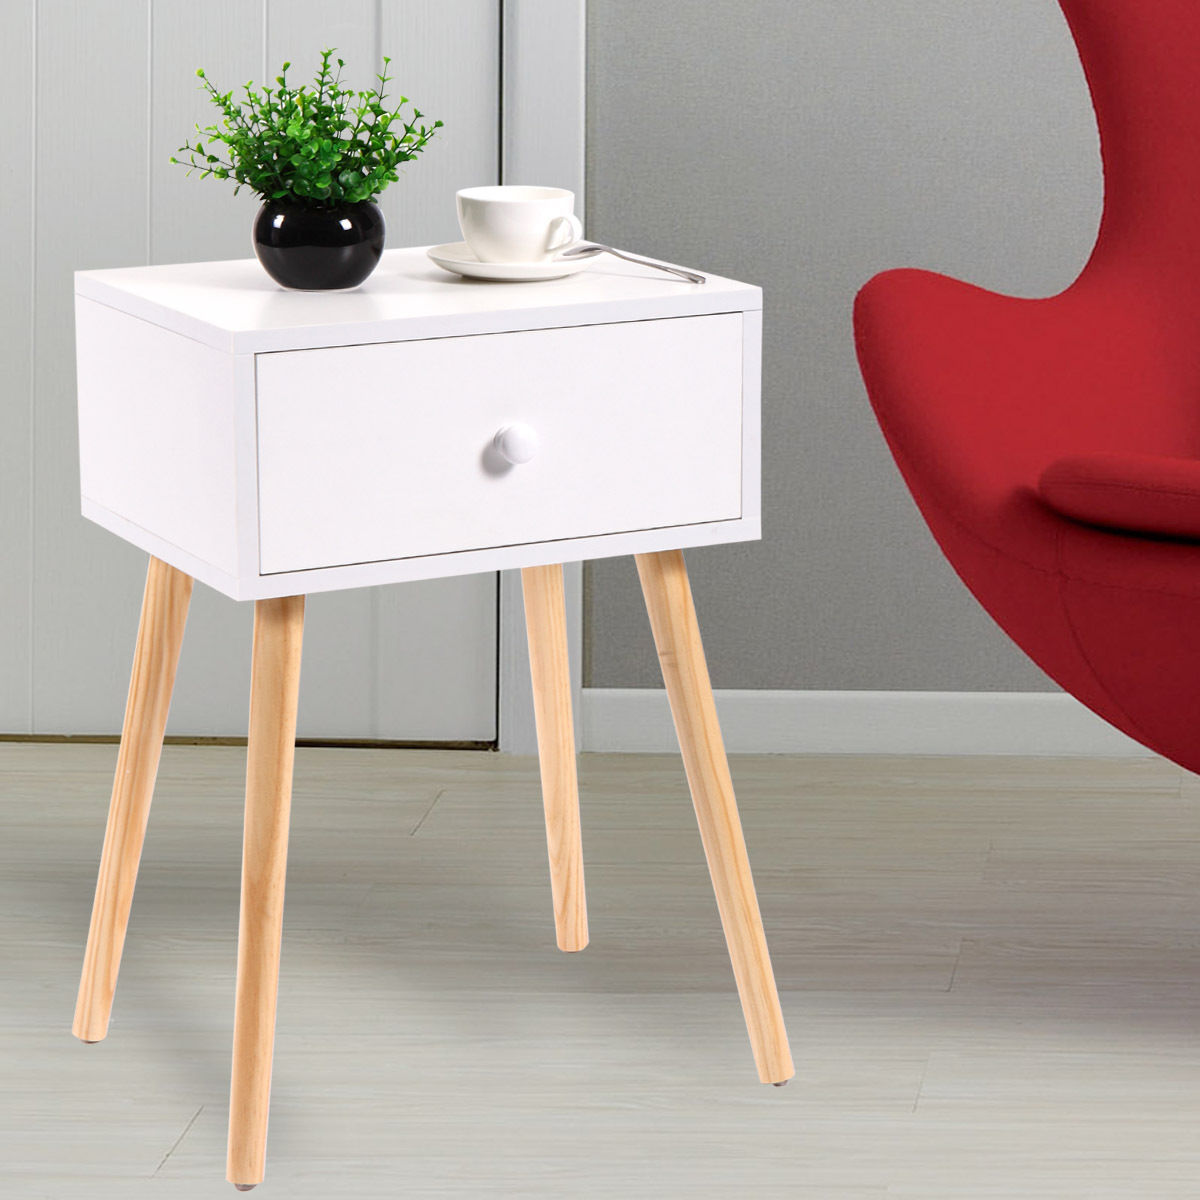 Set of 2 End Table Wood Storage Coffee Tea Table With Drawer Modern Living Room Furniture